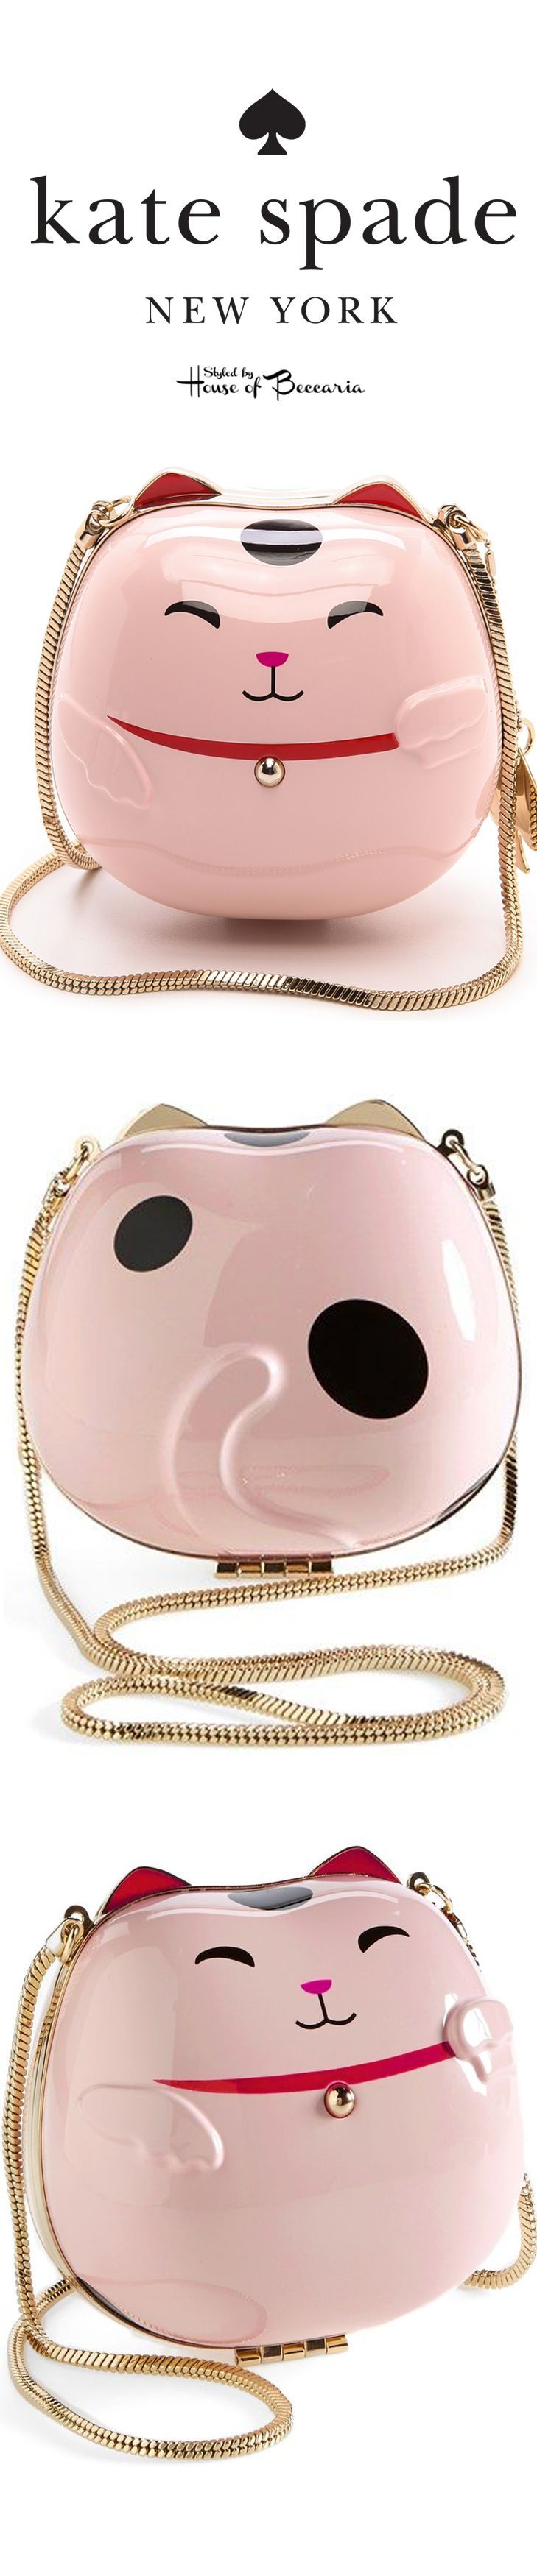 37fb61382 Kate Spade 'Hello Tokyo' Lucky Cat Clutch | House of Beccaria | MISS ...